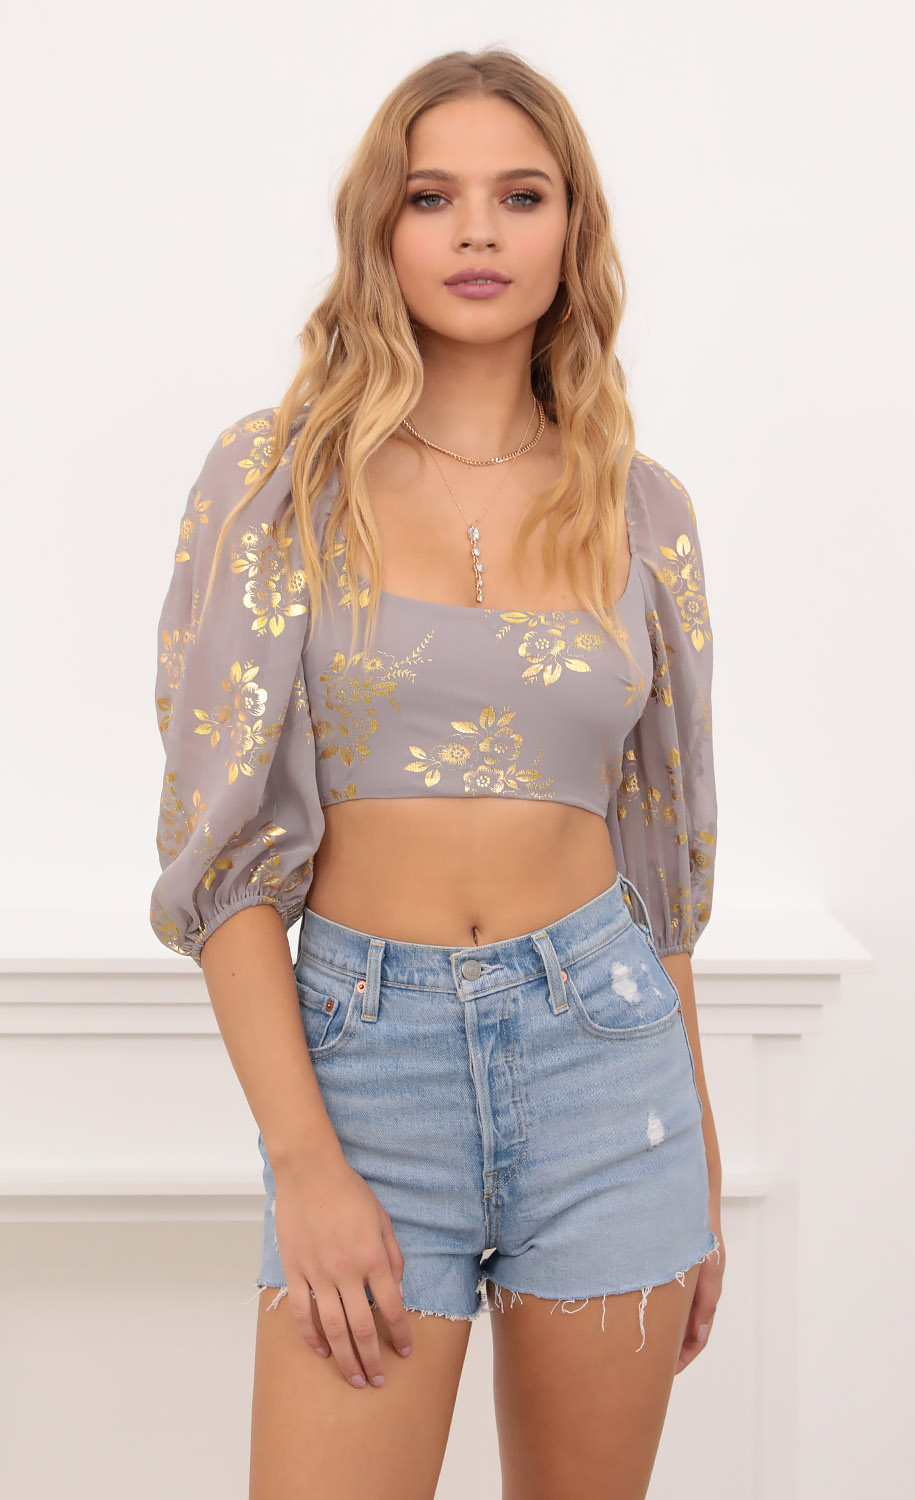 Vanessa Corset Top in Grey and Gold Floral